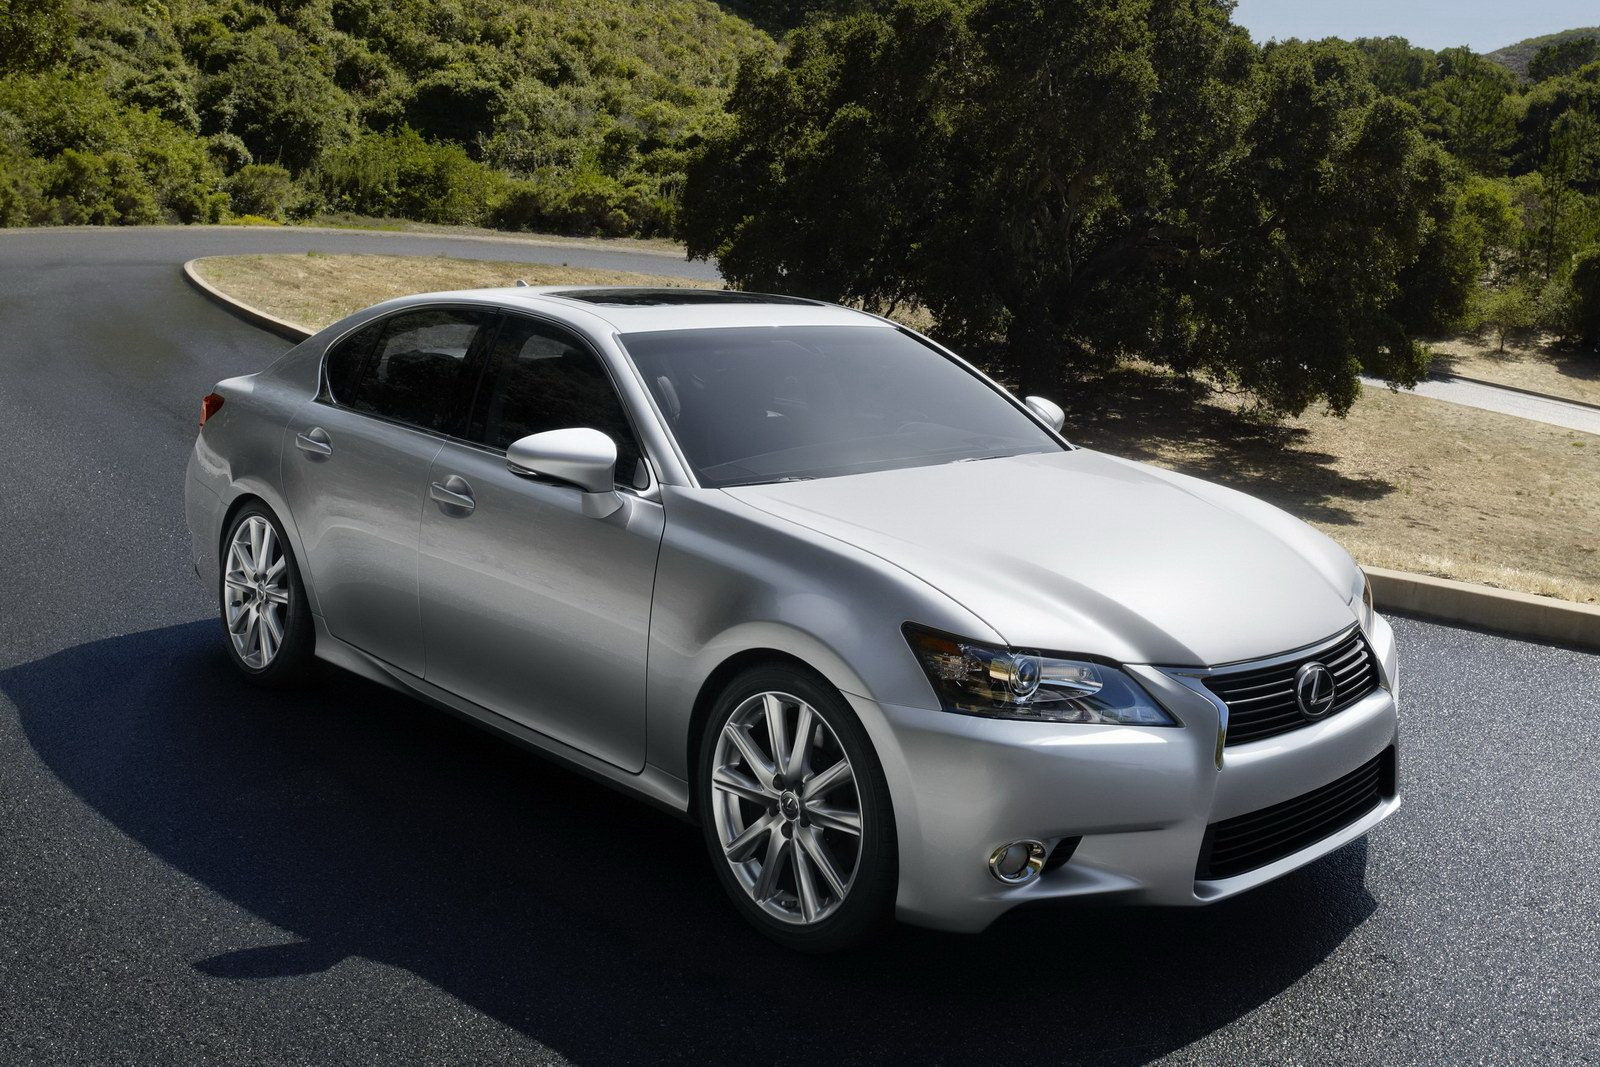 2013 lexus gs 350 unveiled at pebble beach autoevolution. Black Bedroom Furniture Sets. Home Design Ideas